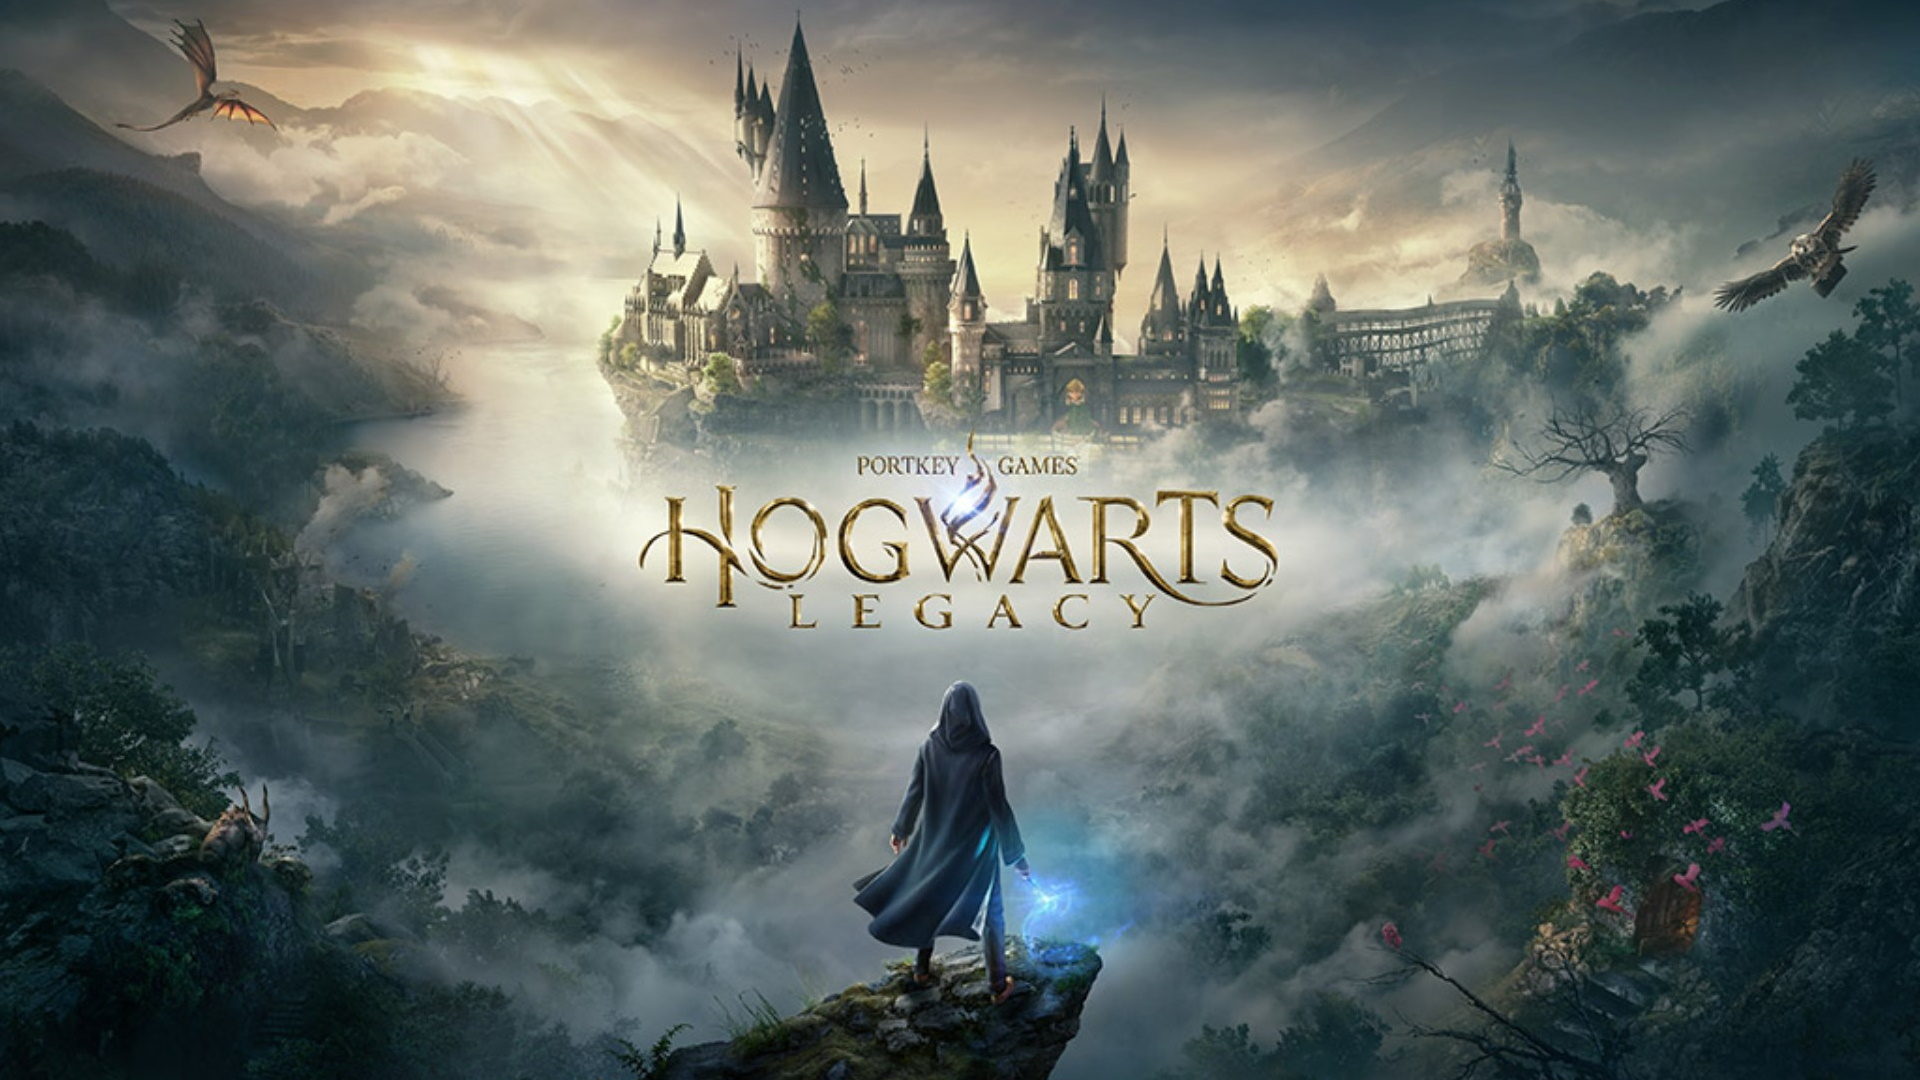 Hogwarts Legacy - PS4 / PS5 - Wallpapers -1920x1080